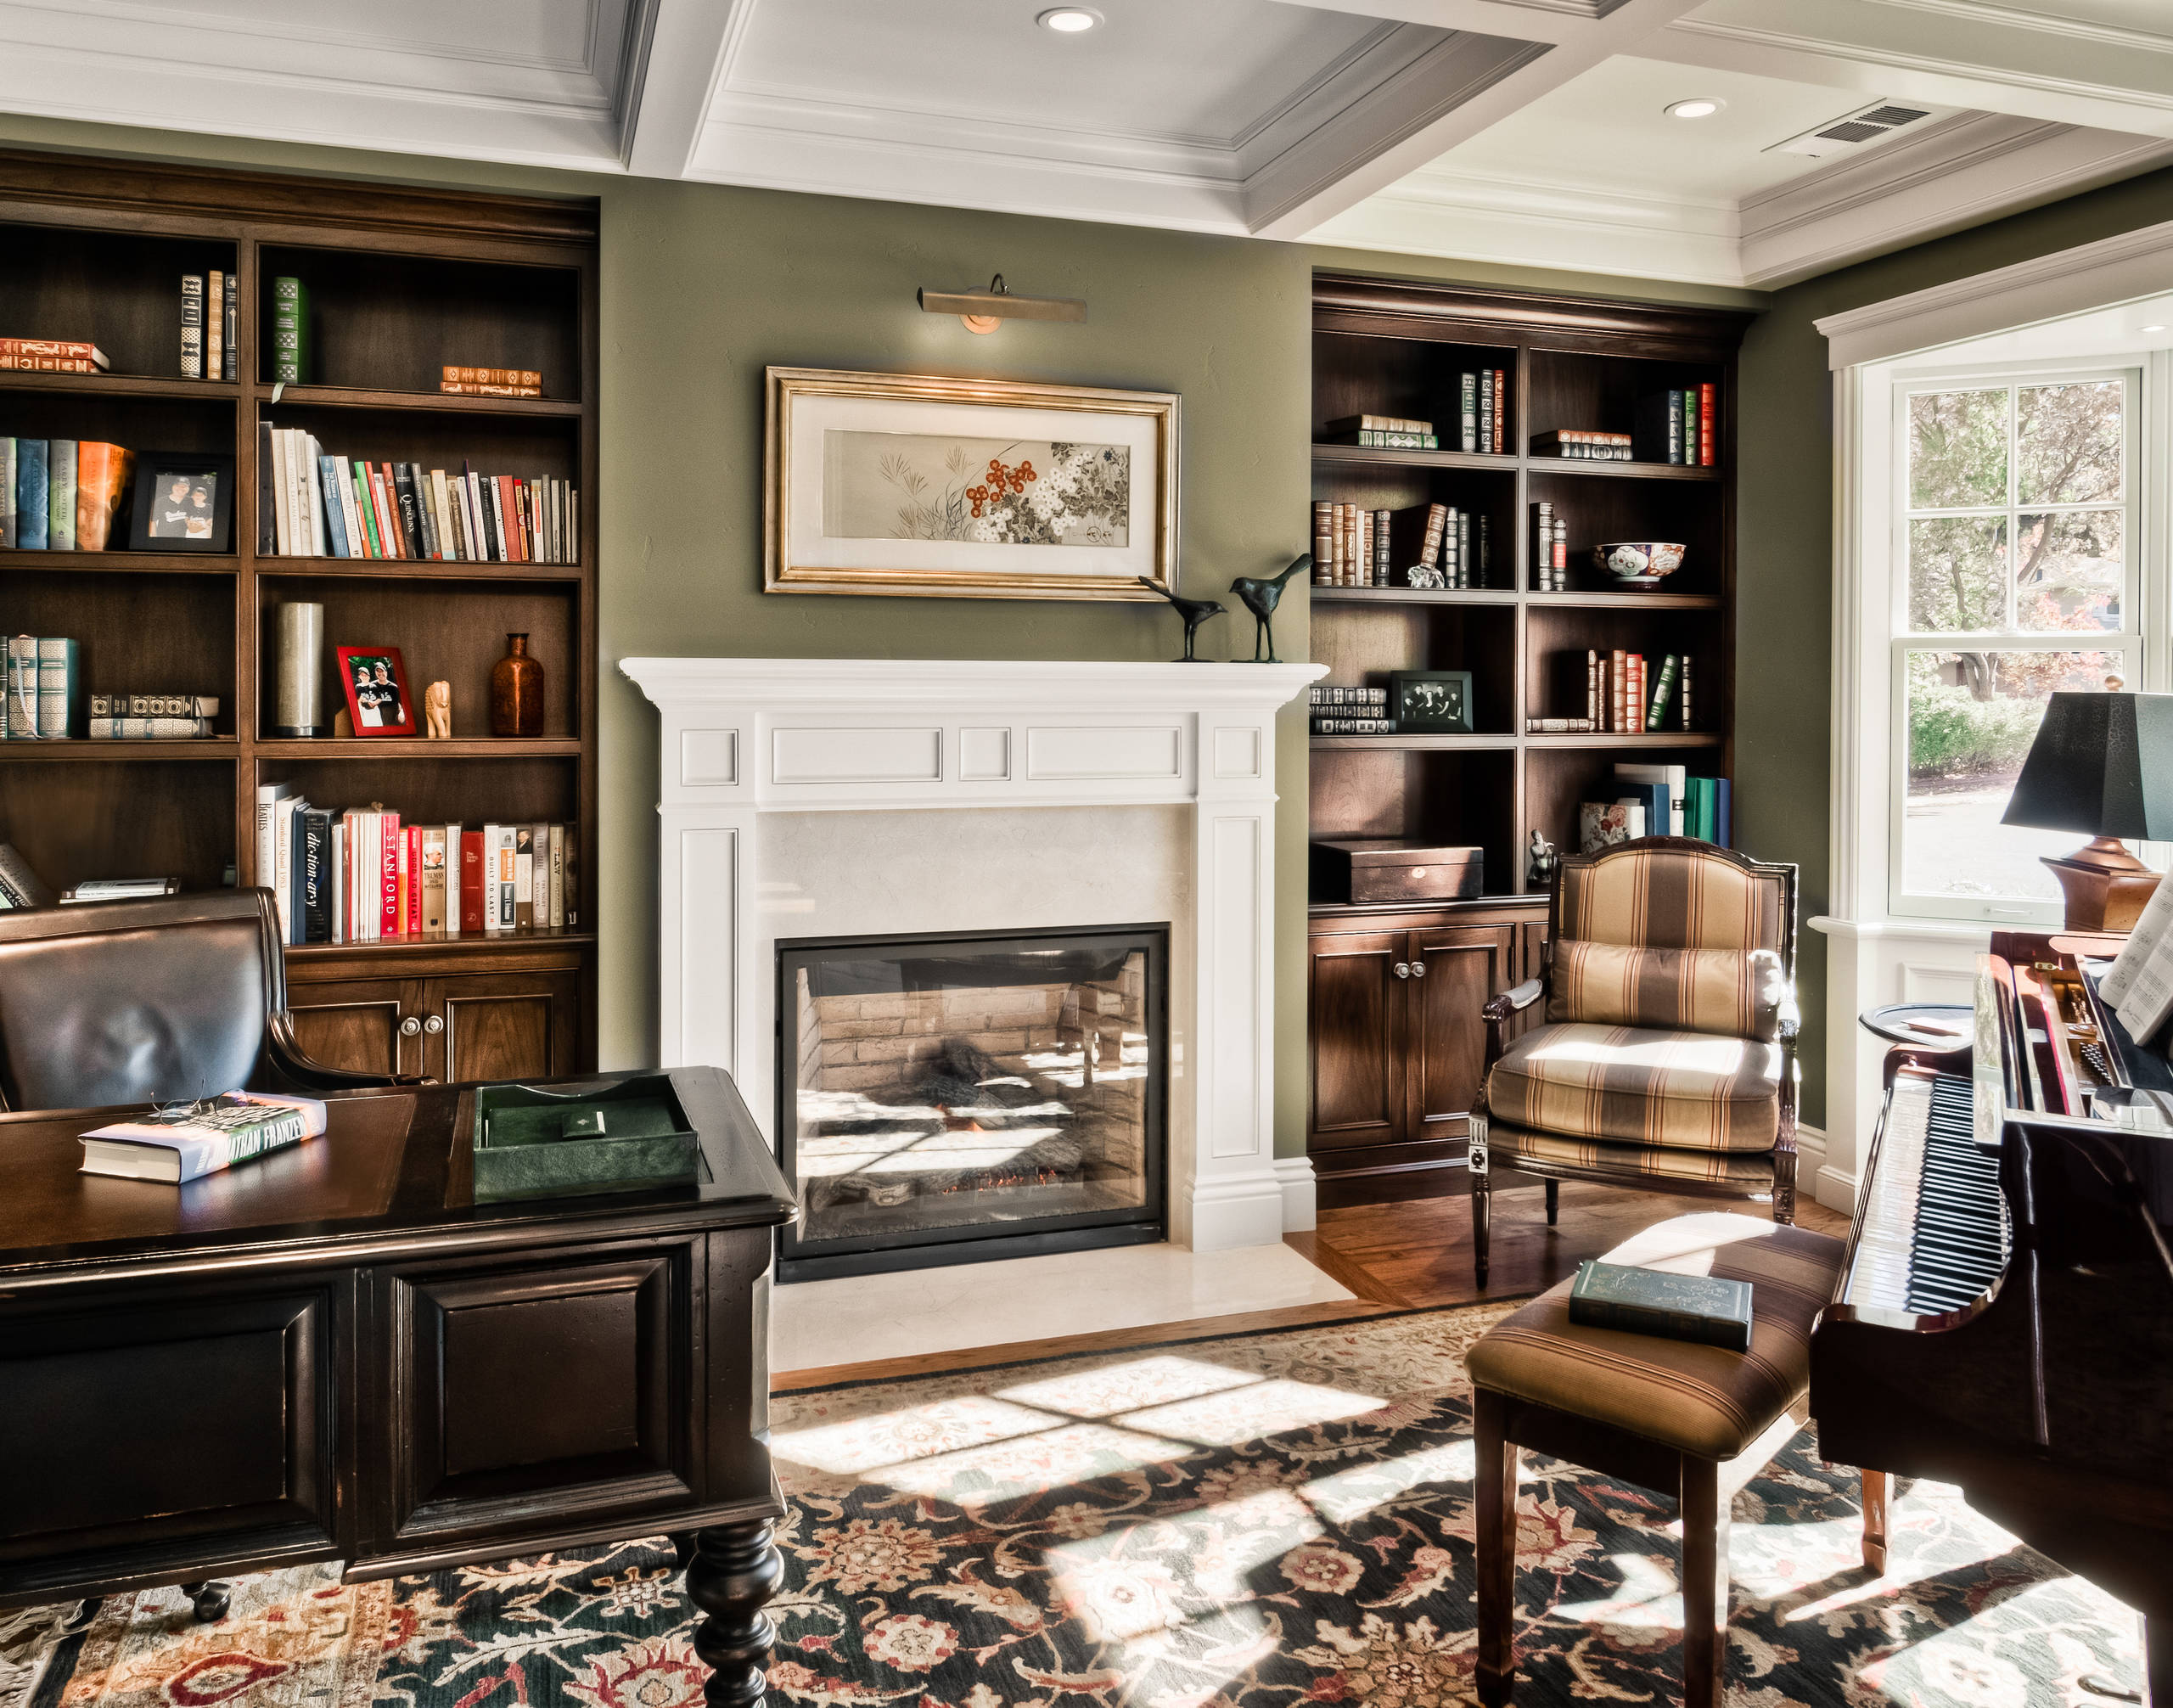 75 Beautiful Home Office With Green Walls Pictures Ideas March 2021 Houzz